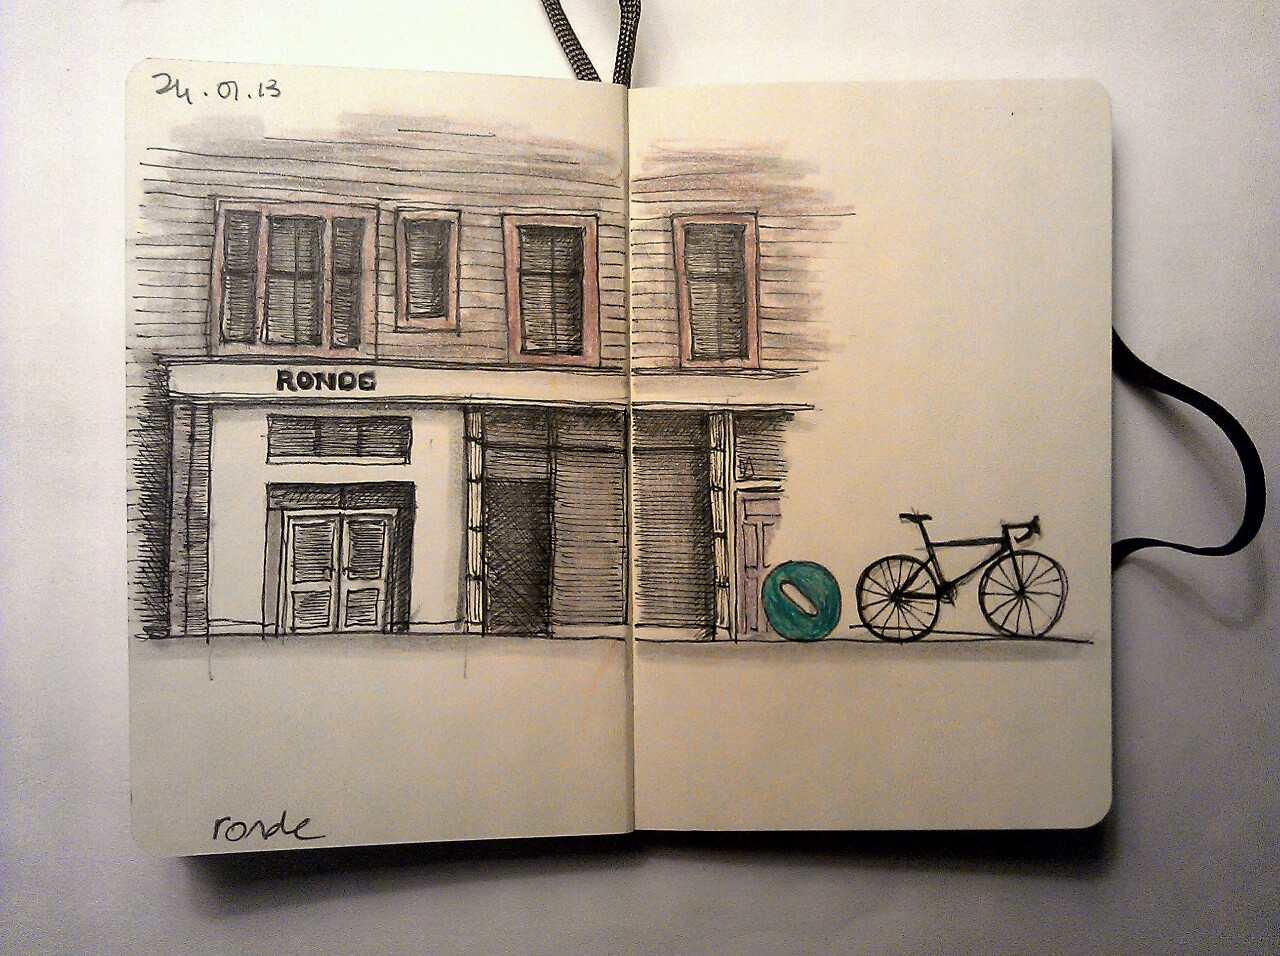 365 drawings later … day 359 … ronde